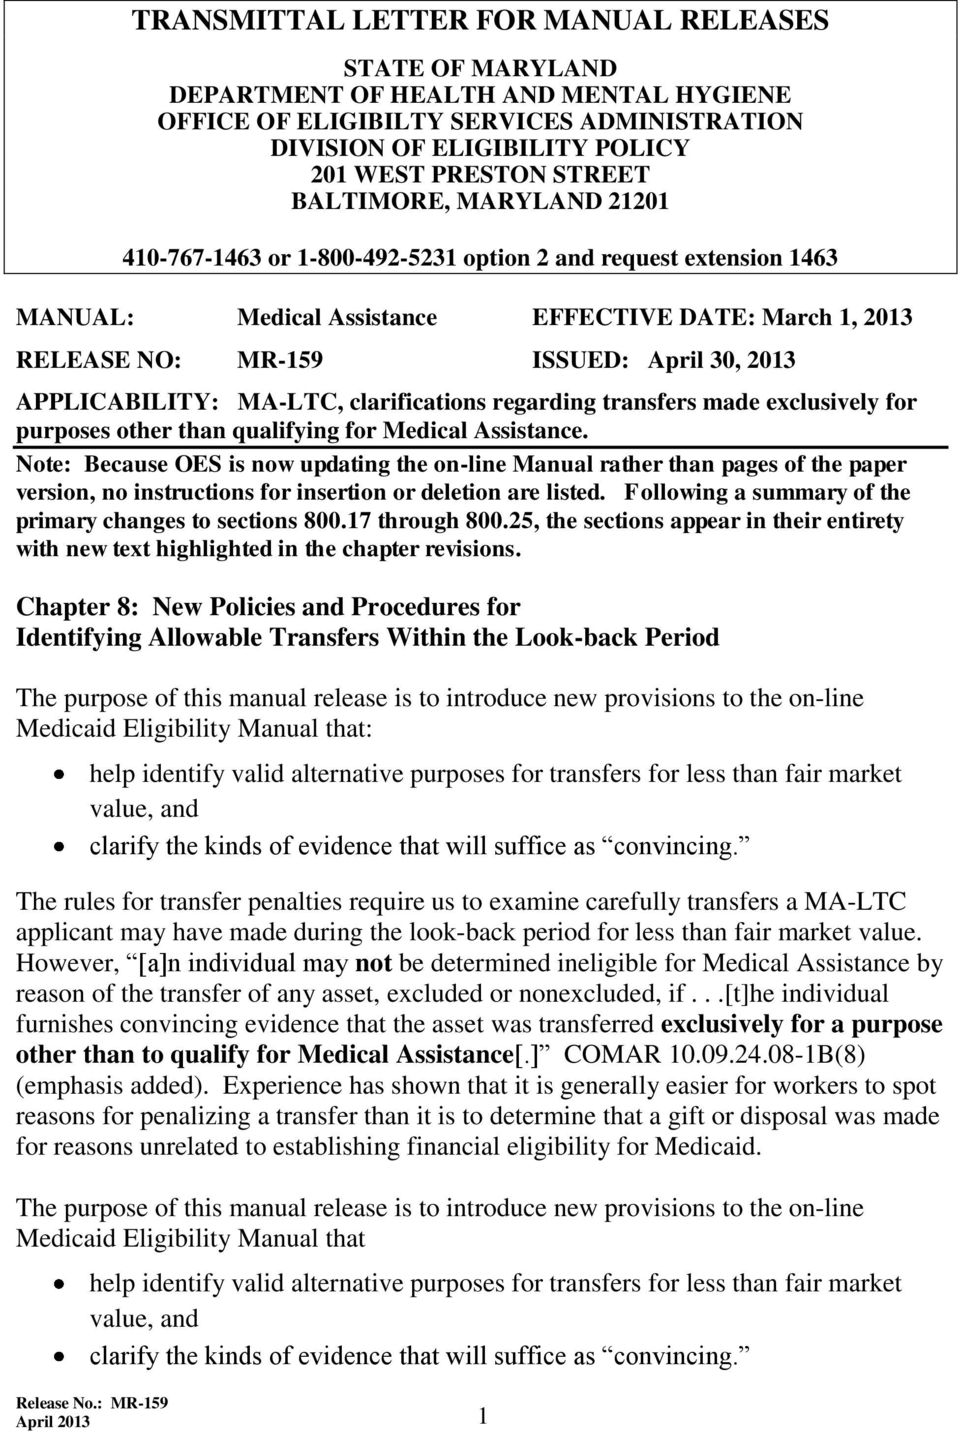 APPLICABILITY: MA-LTC, clarifications regarding transfers made exclusively for purposes other than qualifying for Medical Assistance.